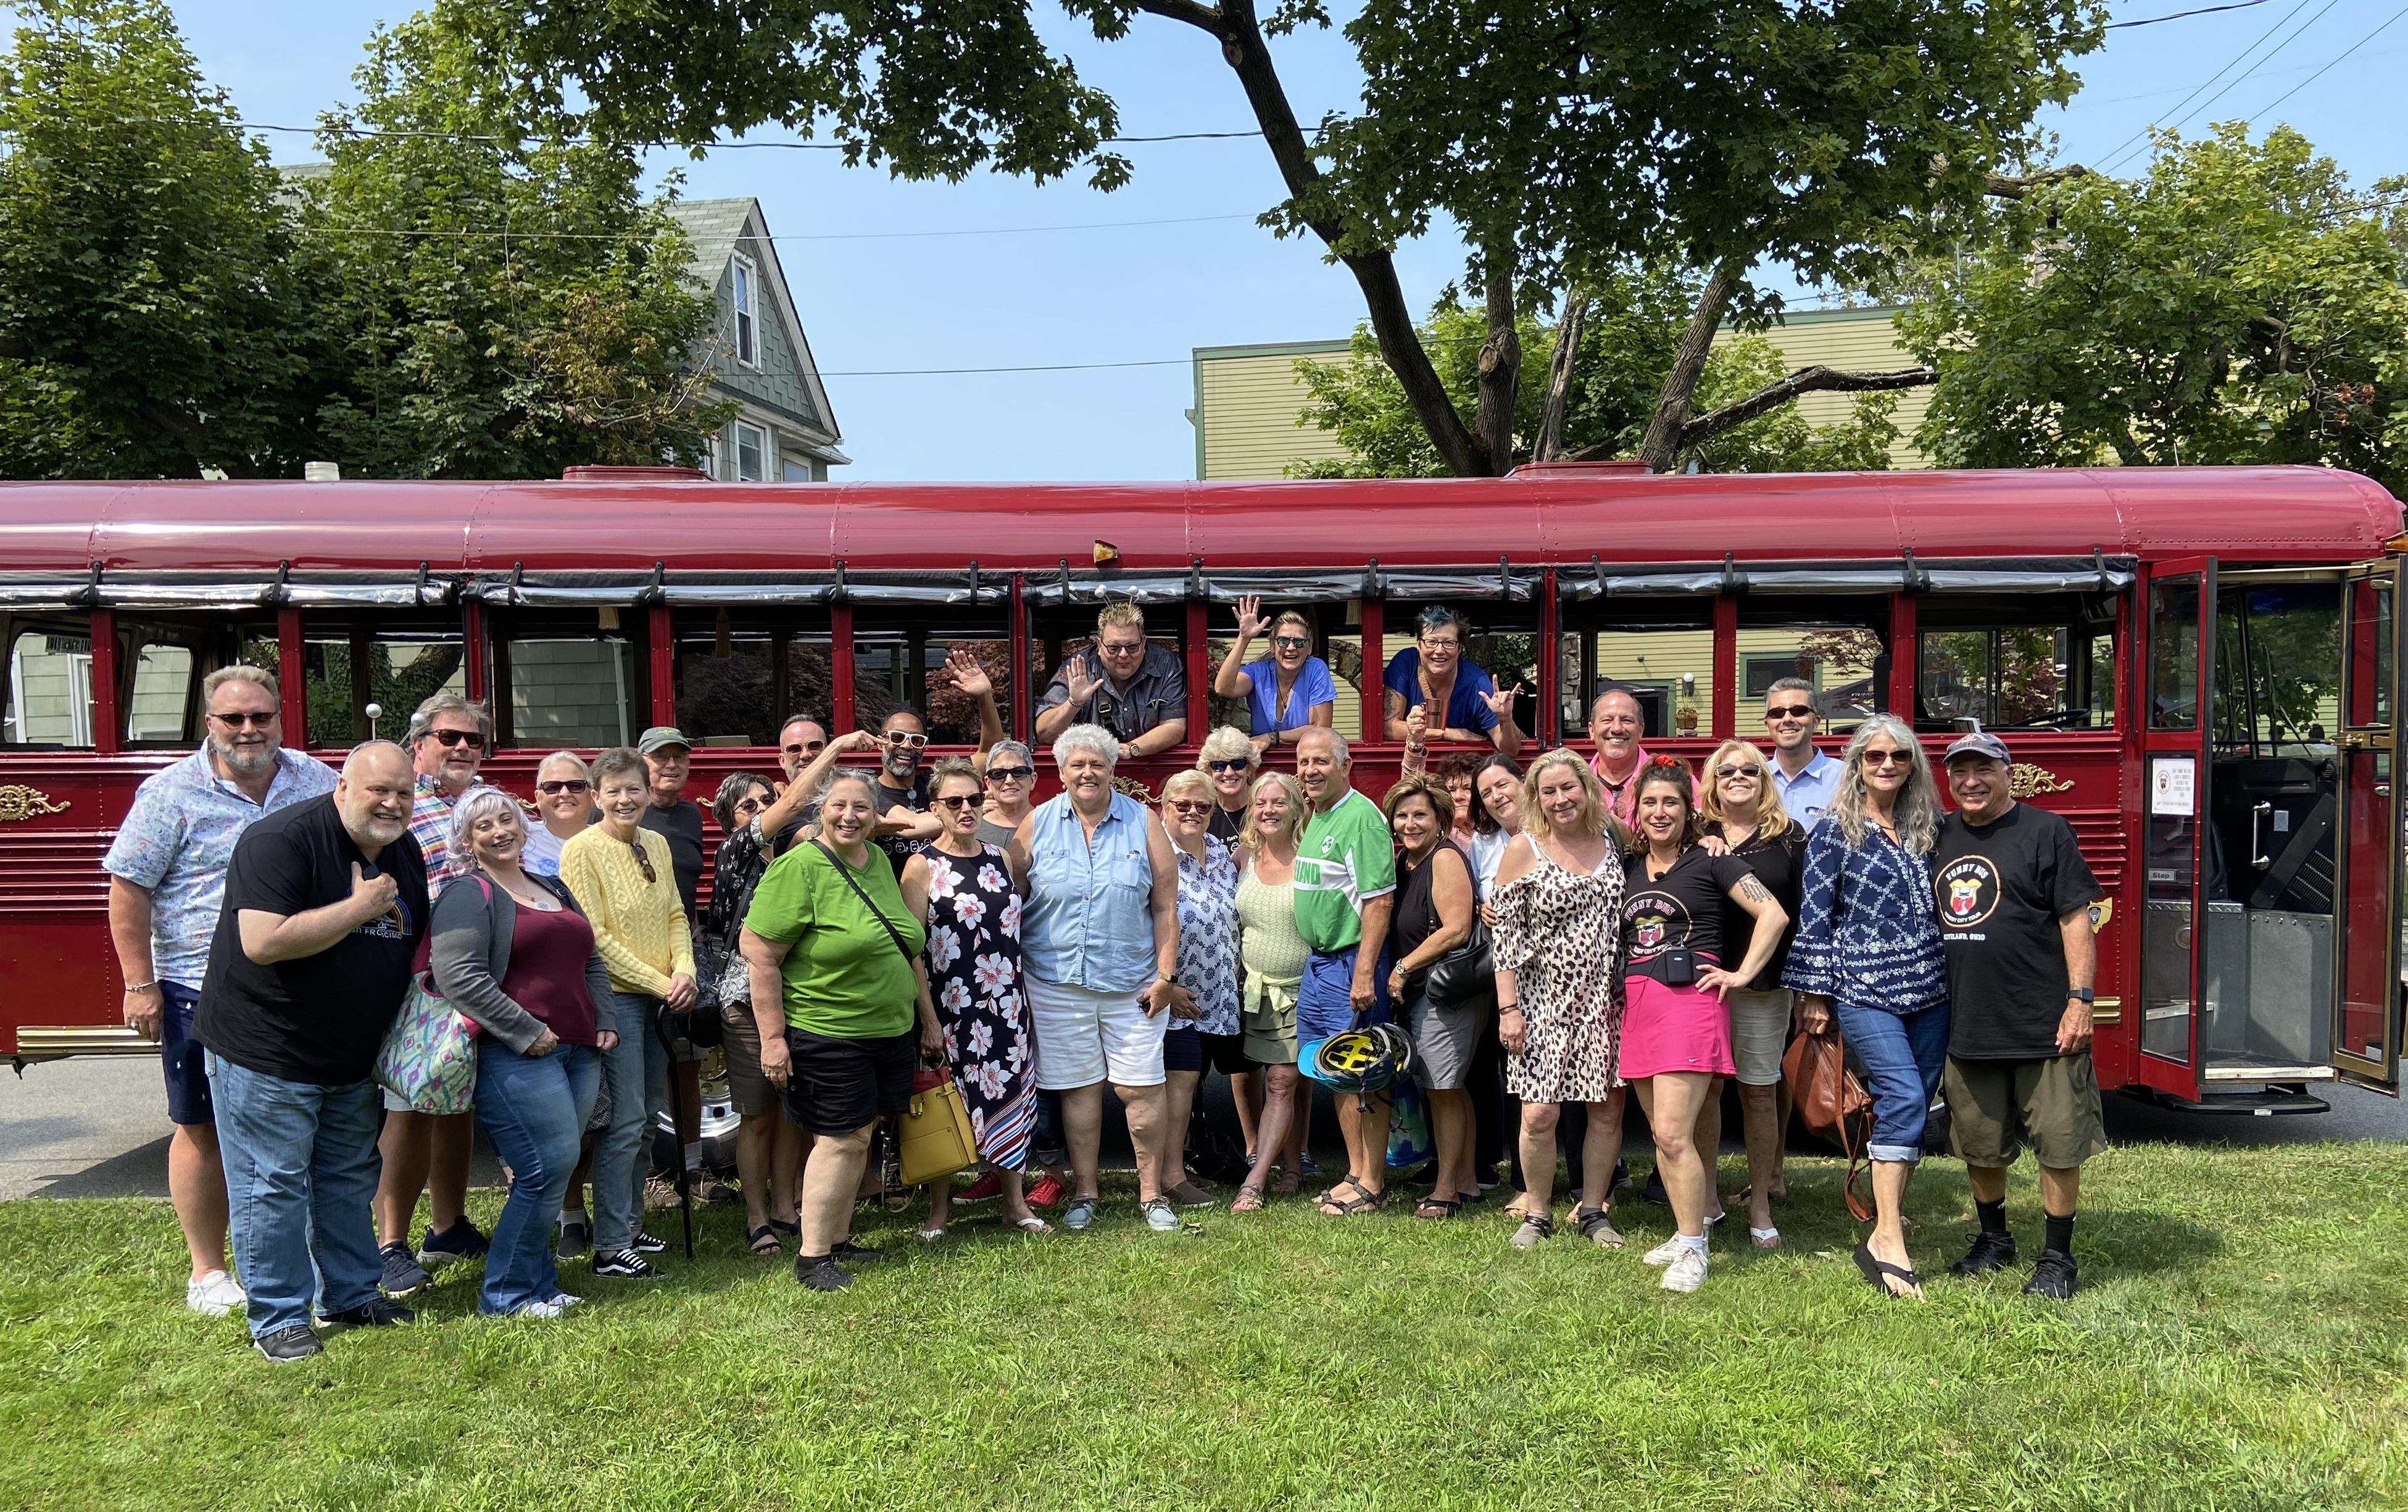 Funny Bus Cleveland private tours are amazing.